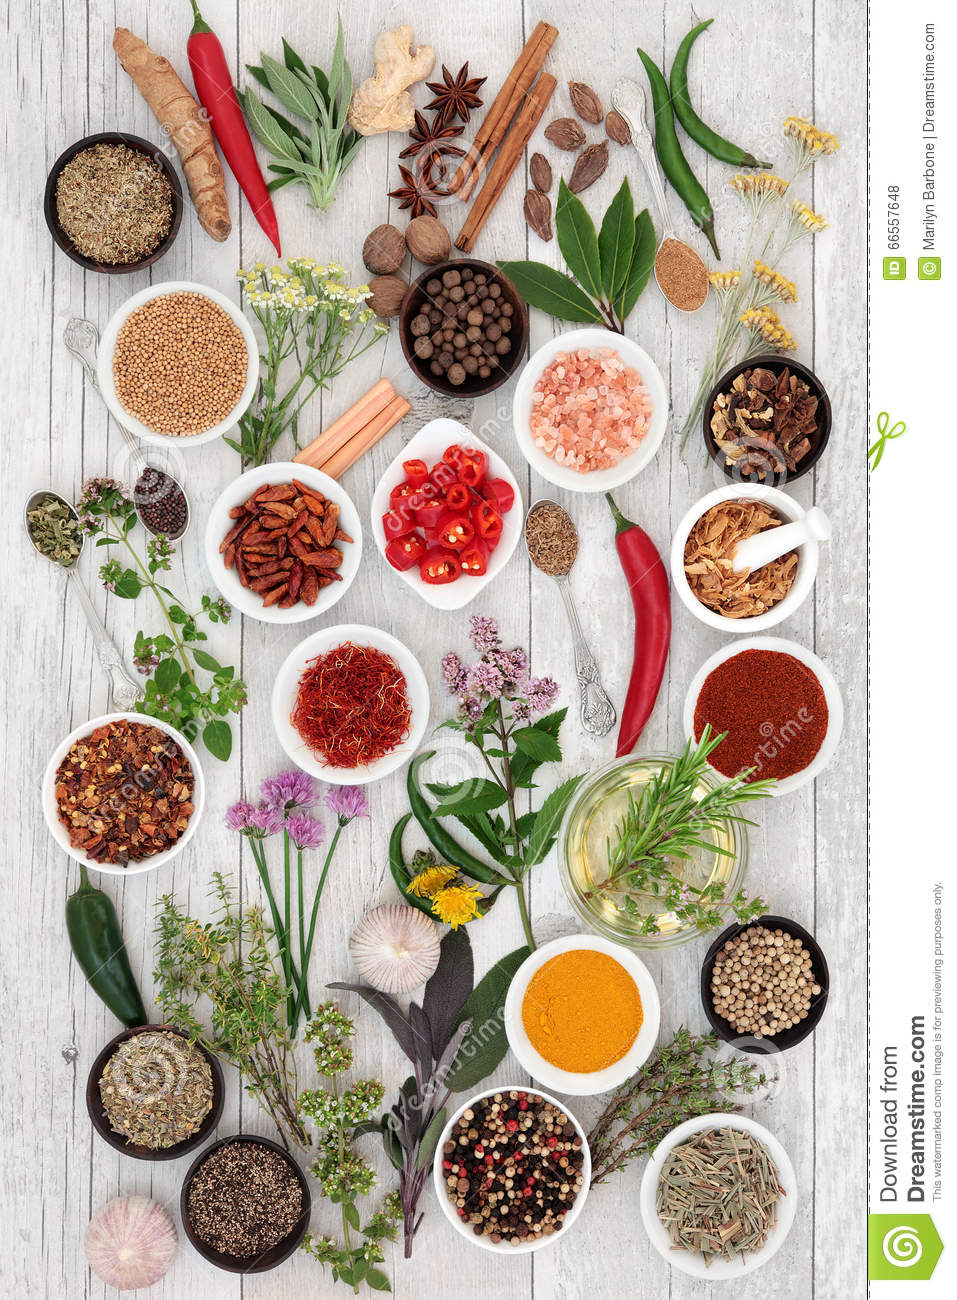 Abstract Herb and Spice Background